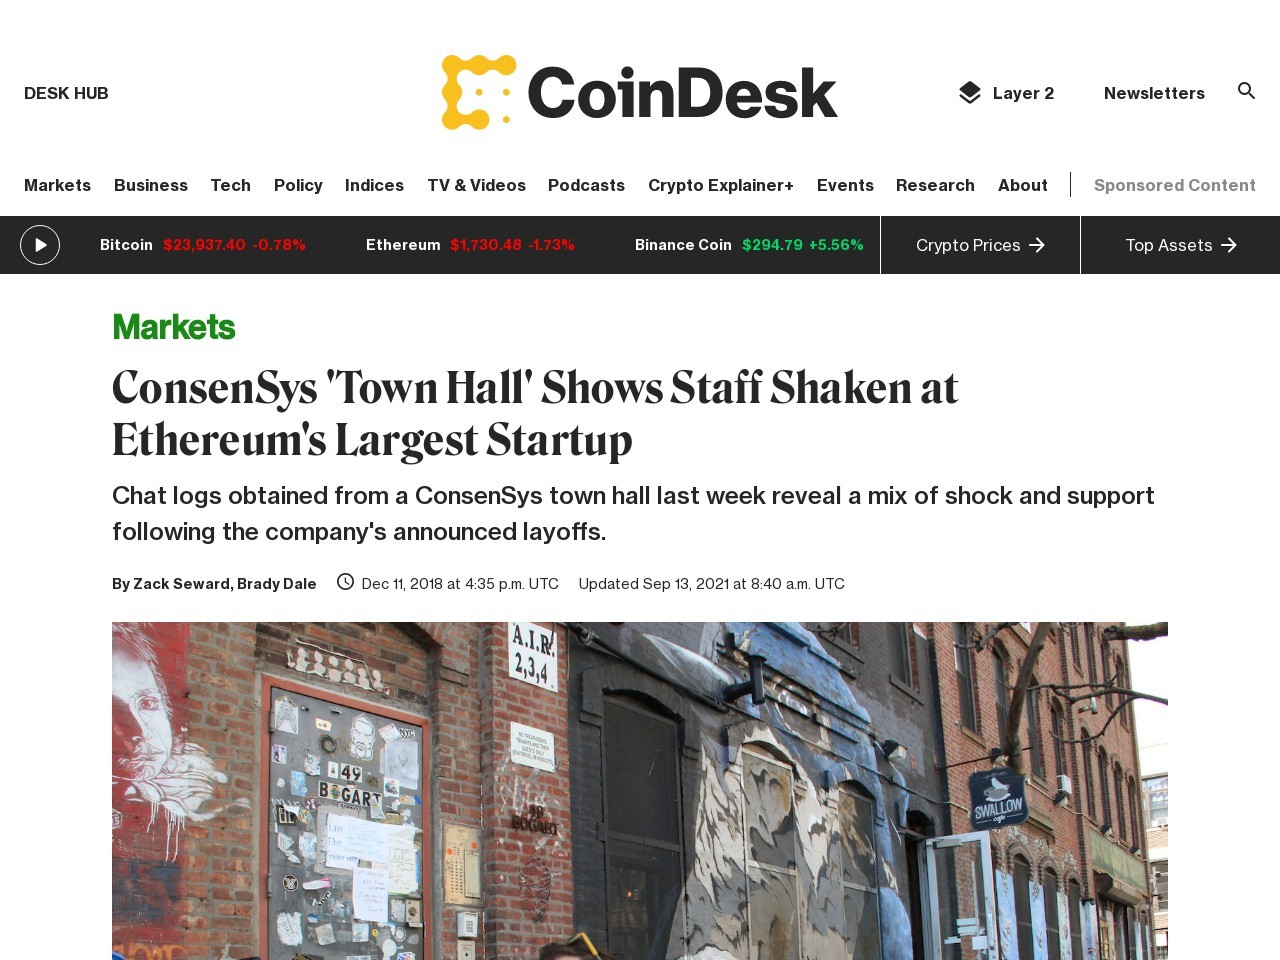 ConsenSys 'Town Hall' Shows Staff Shaken at Ethereum's Largest Startup